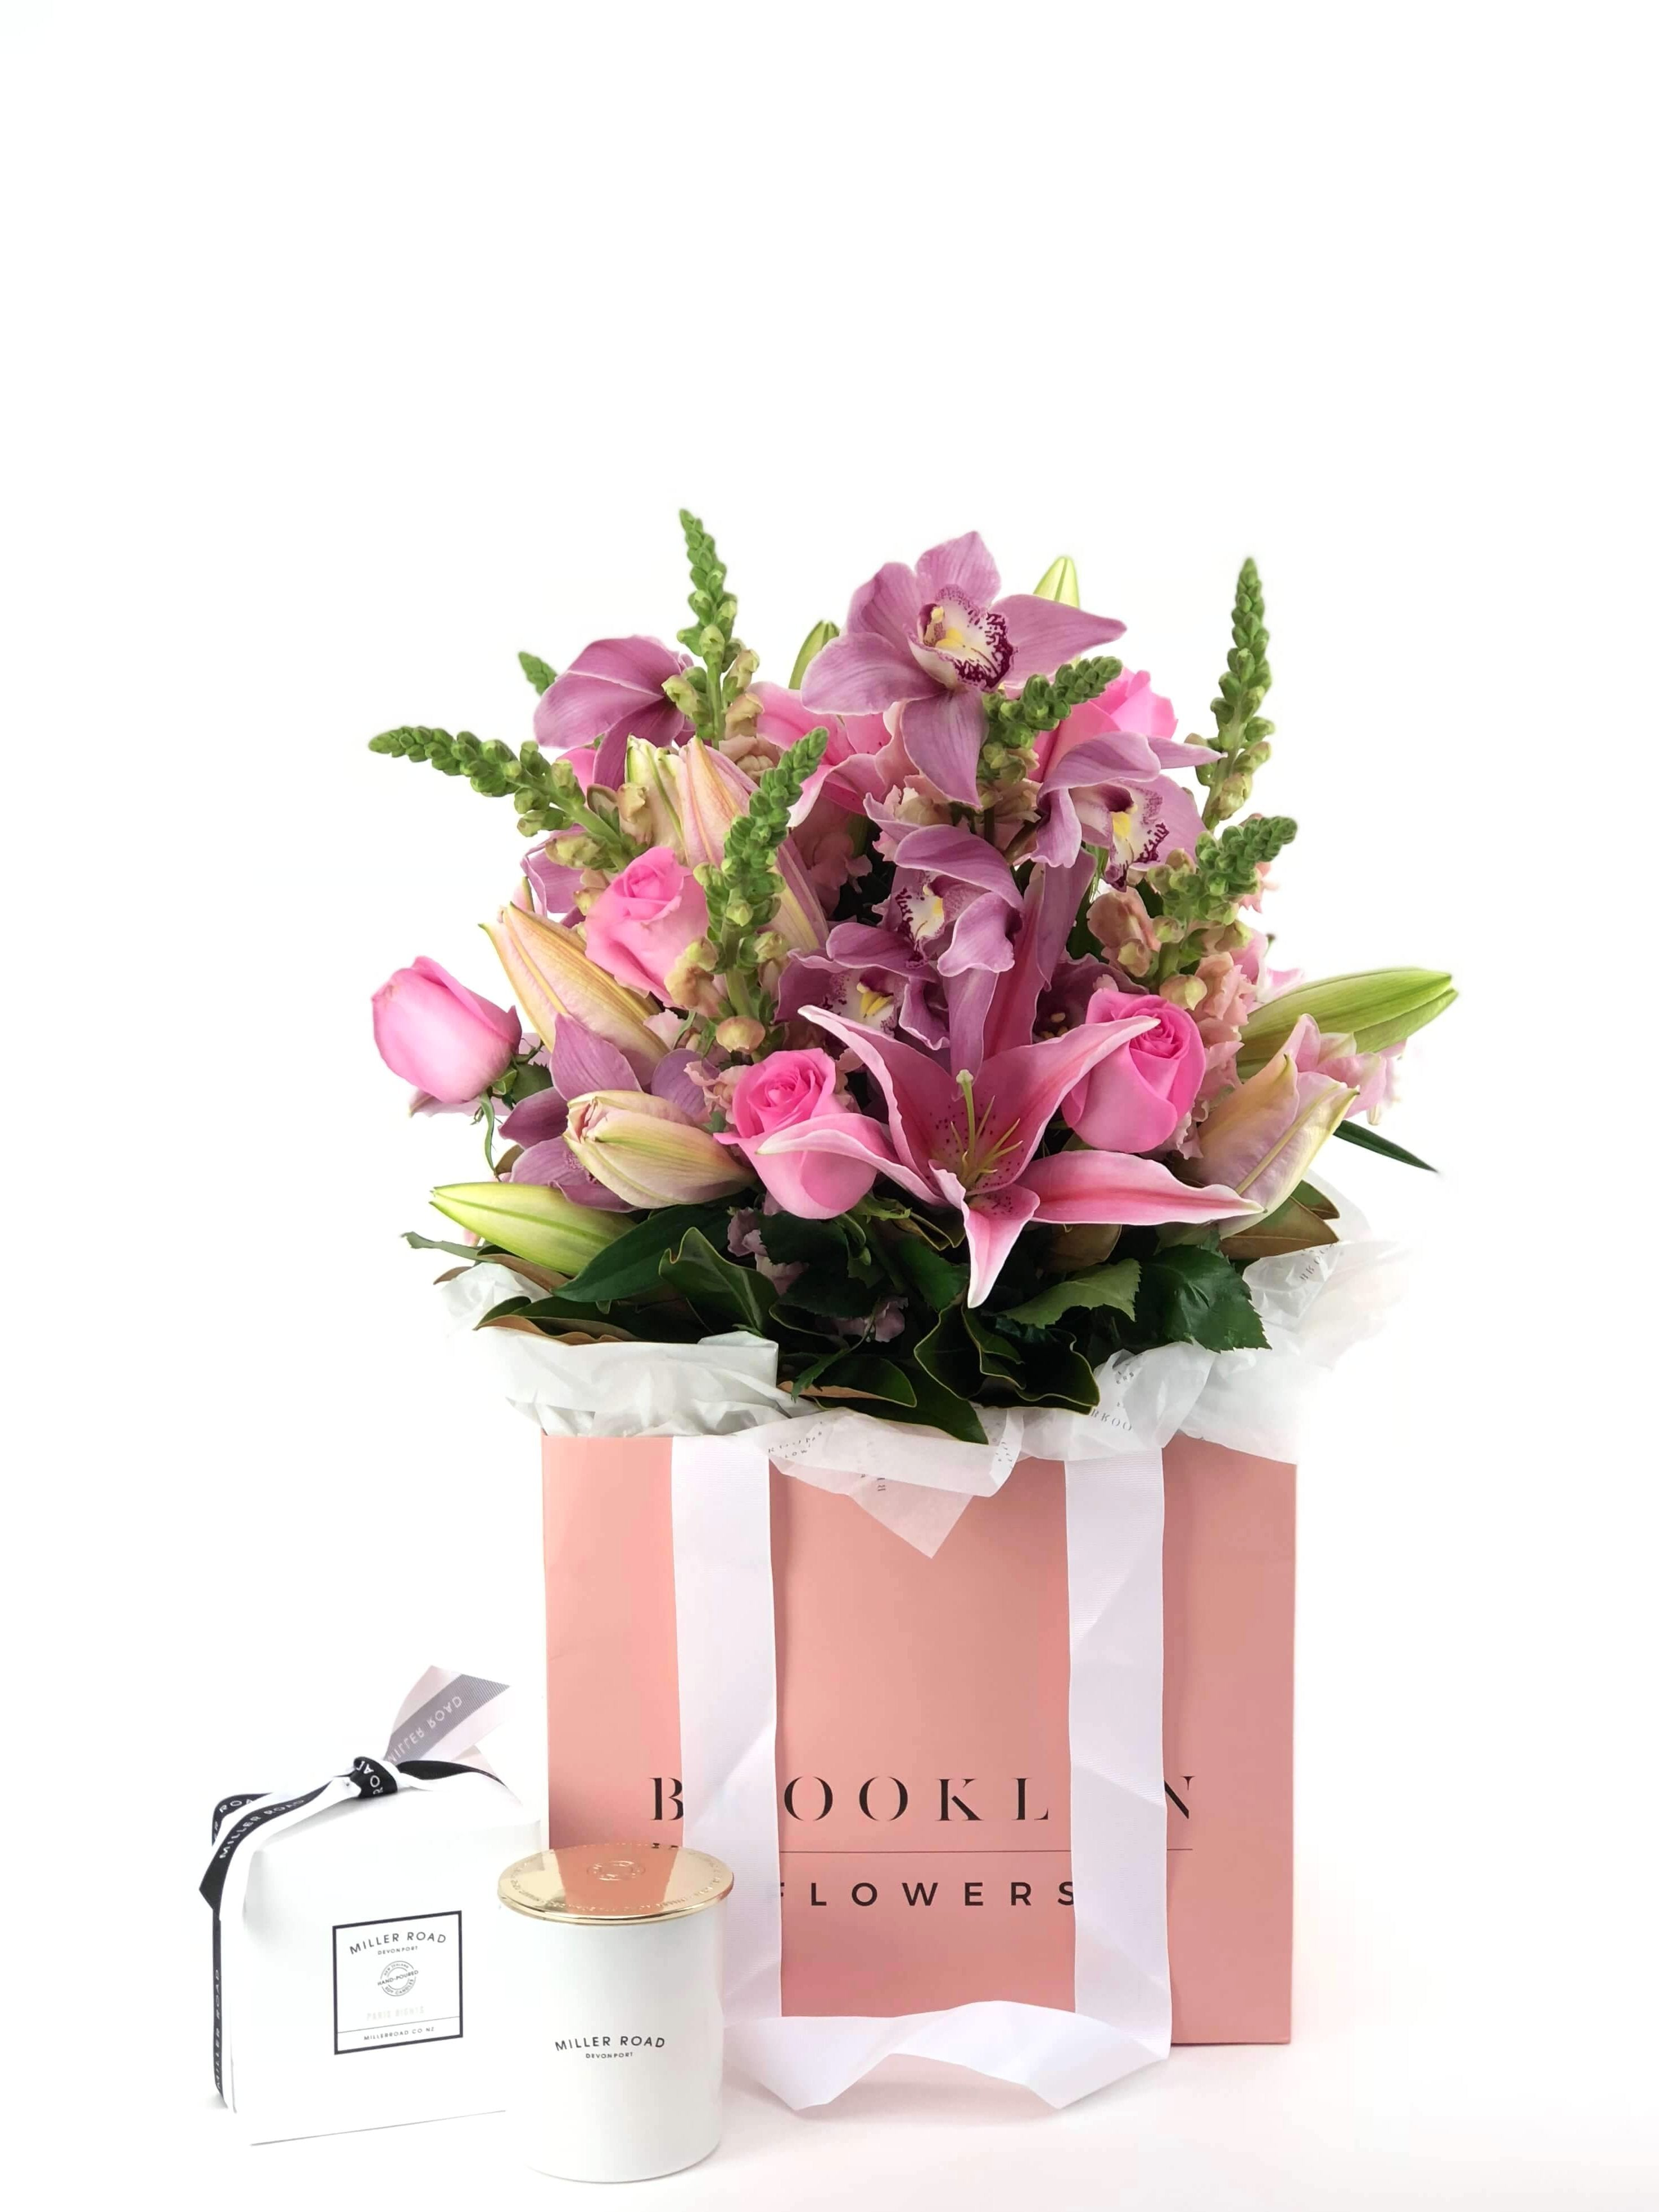 Bouquet Bag and Gift Package, Bouquet Bag & Candle, Bouquet, Pretty, Brooklyn Flowers, Auckland Florist